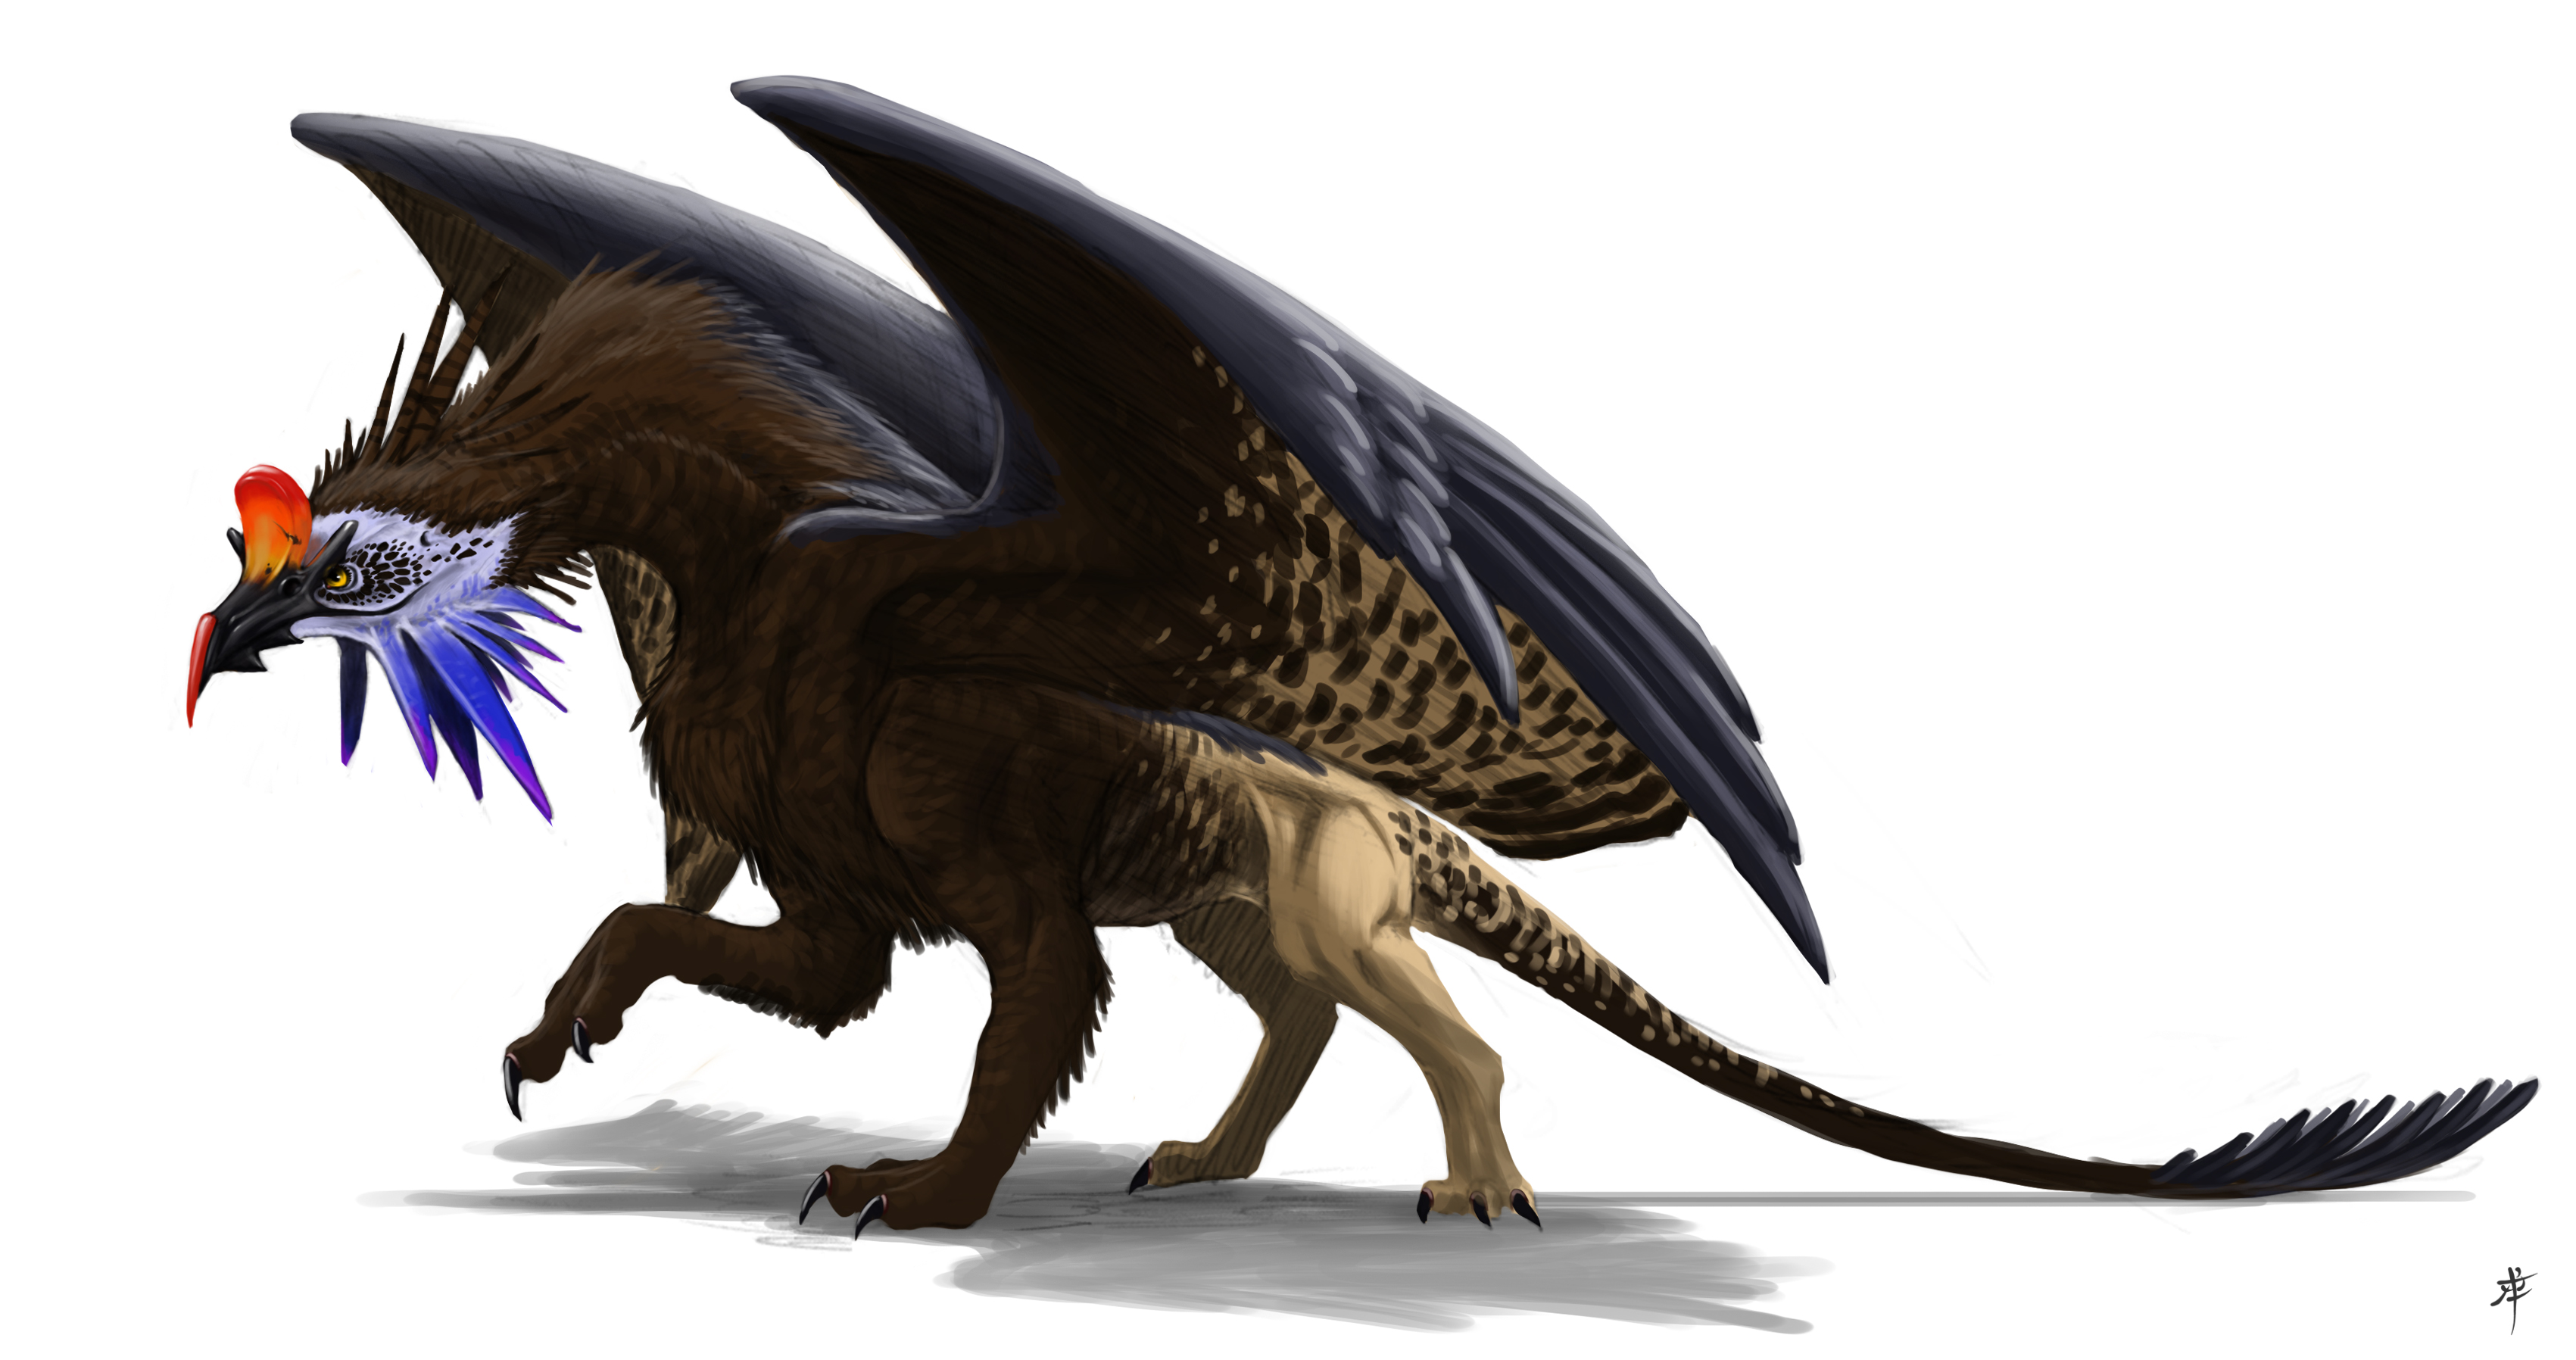 Griffin by rob powell on deviantart for The griffin